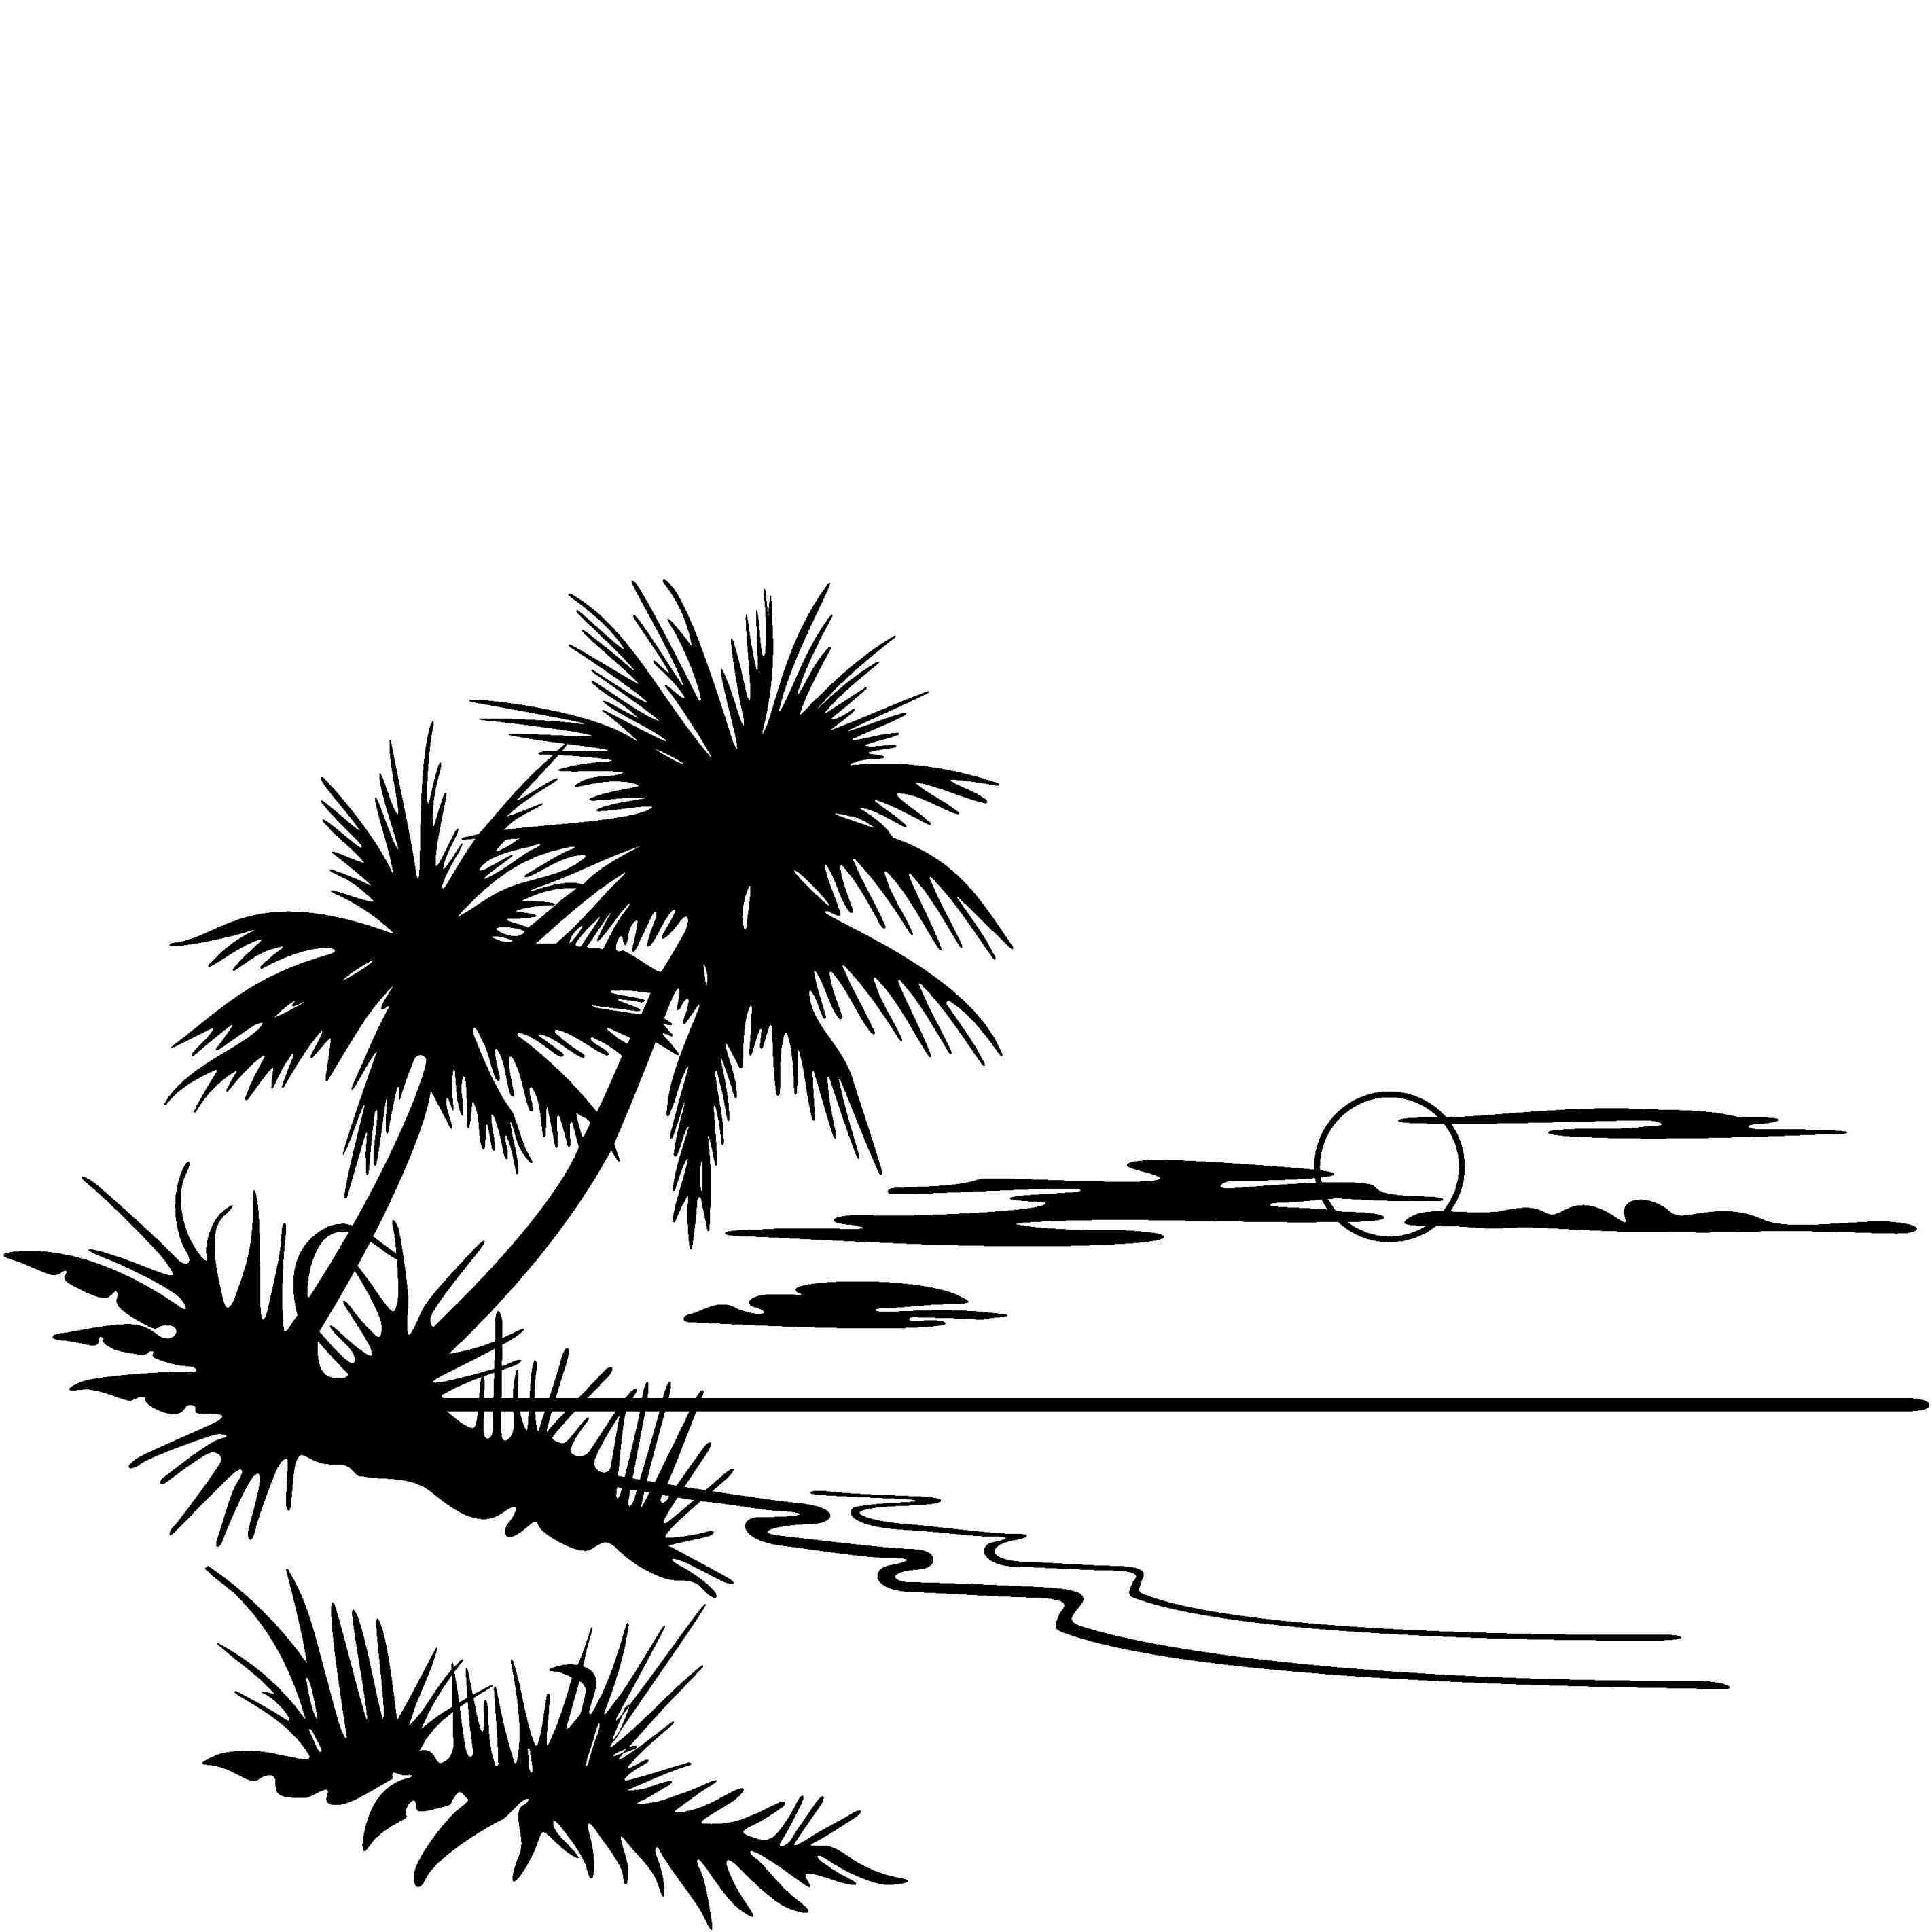 Beach scene clipart black and white clip art transparent stock Beach black and white two palm trees clip art black and white ... clip art transparent stock